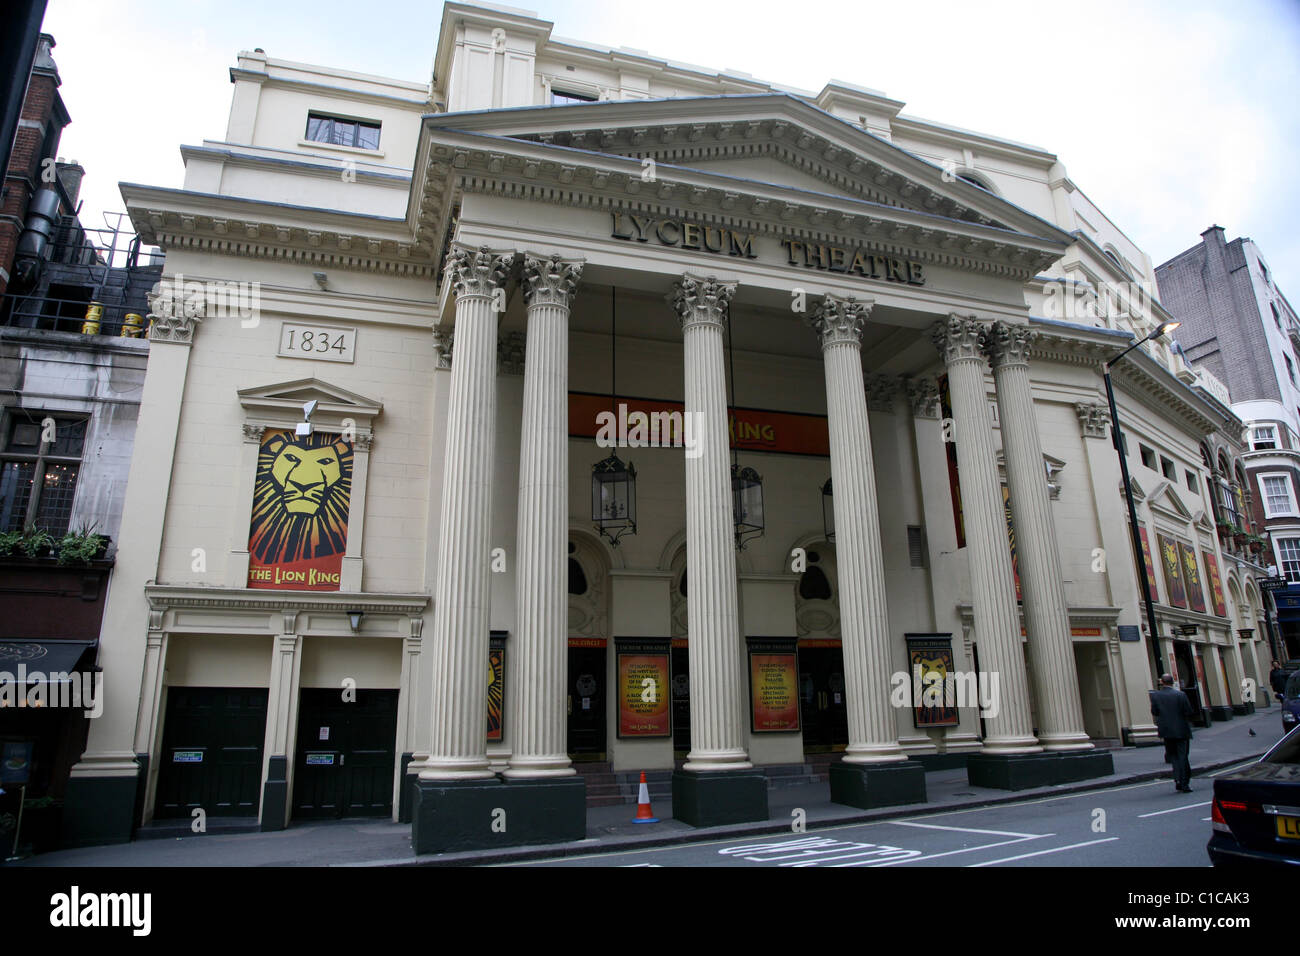 General View gv of the Lyceum Theatre in London, England. - Stock Image